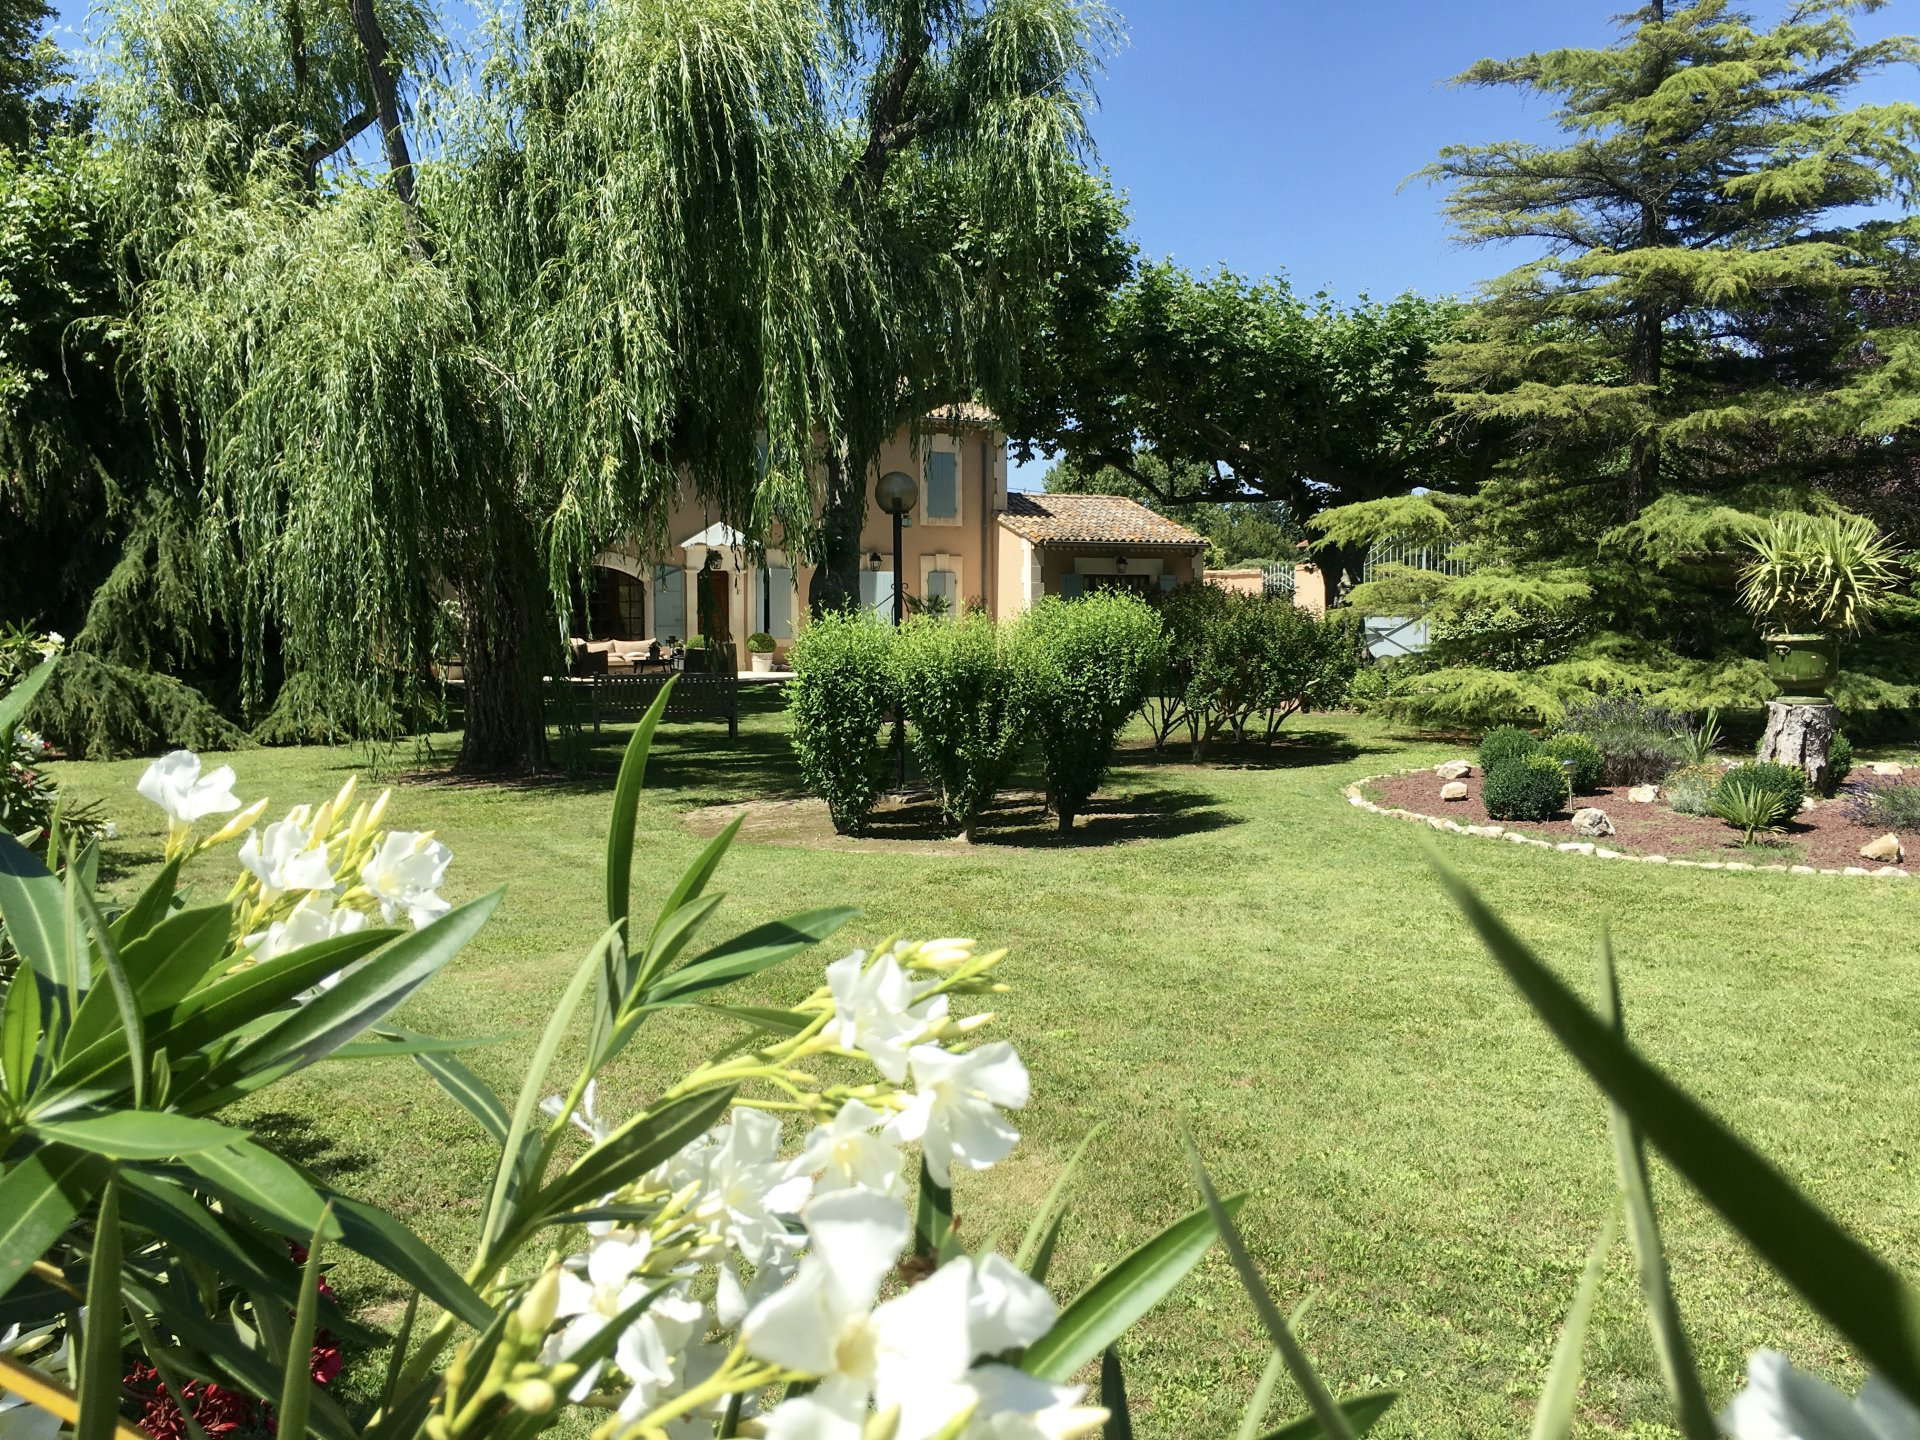 For Sale - NOVES - Property with swimming pool